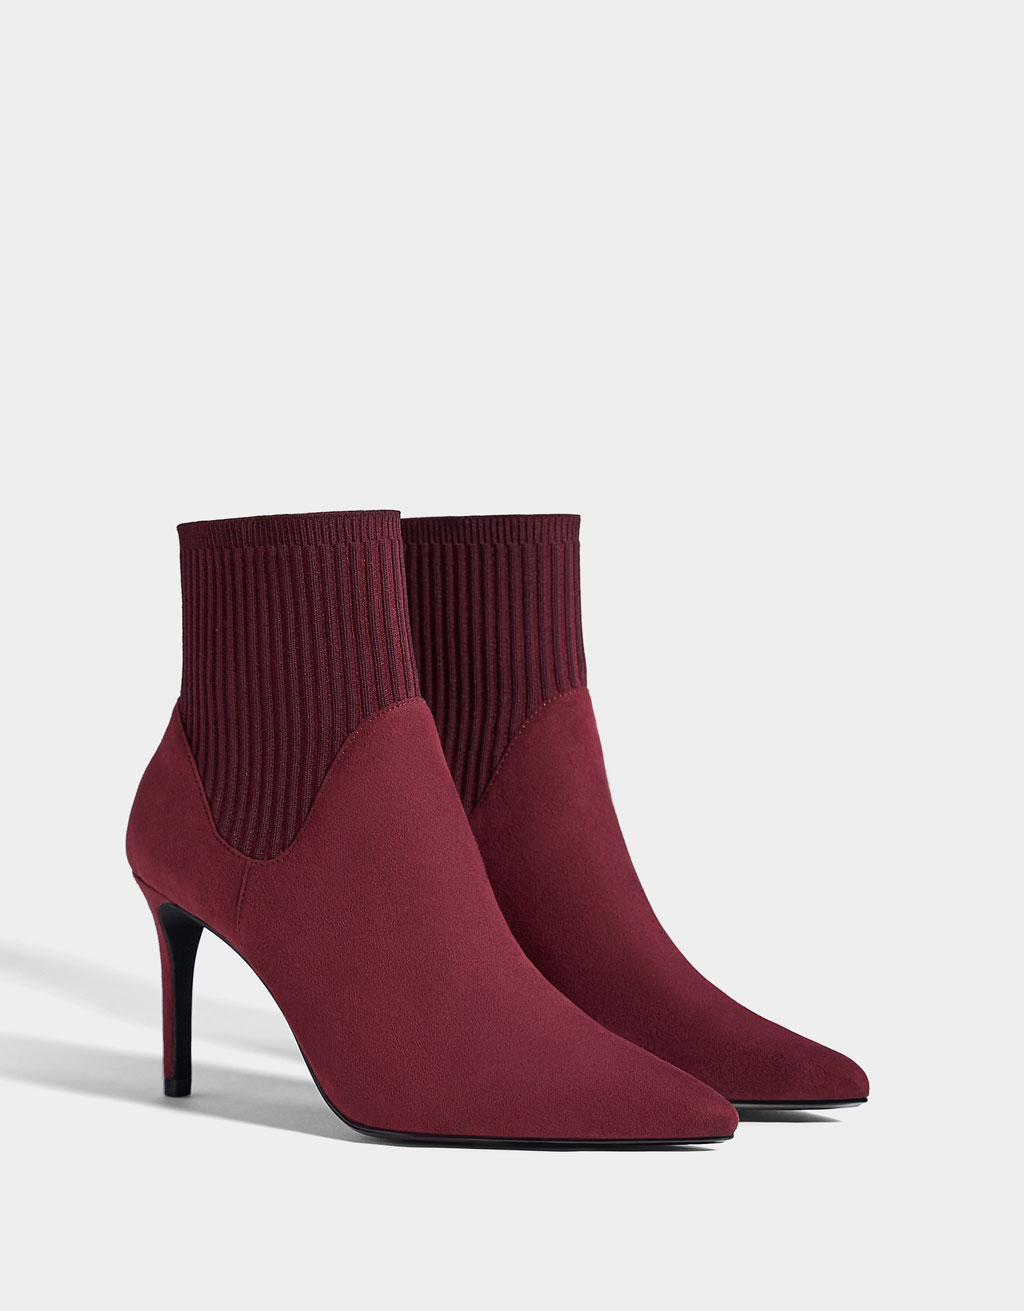 Sock-style ankle boots with stiletto heels